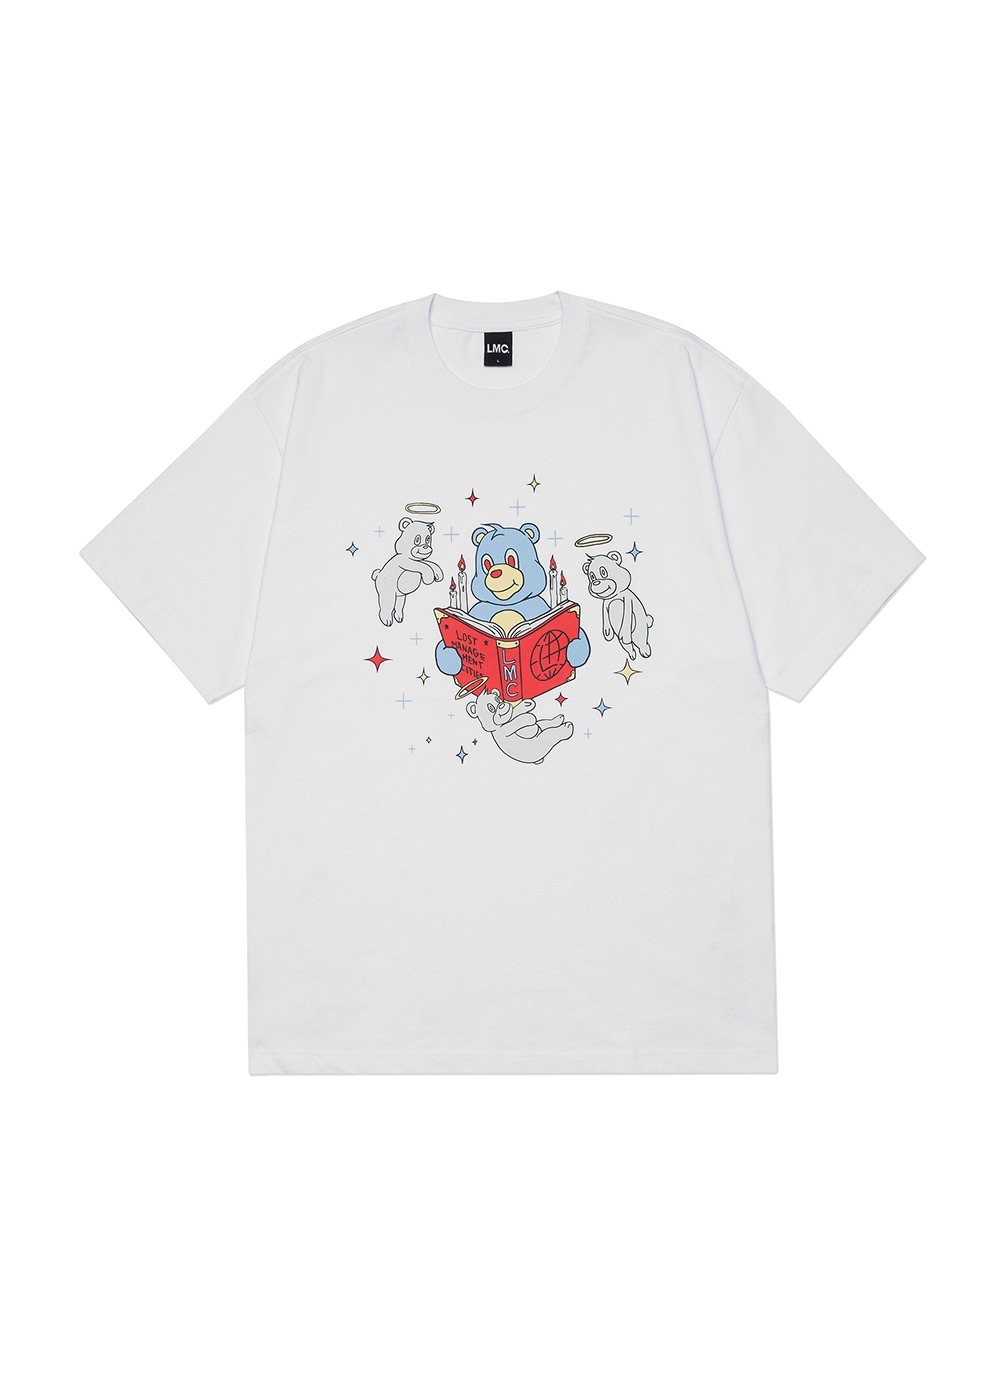 LMC GHOST BEARS TEE white